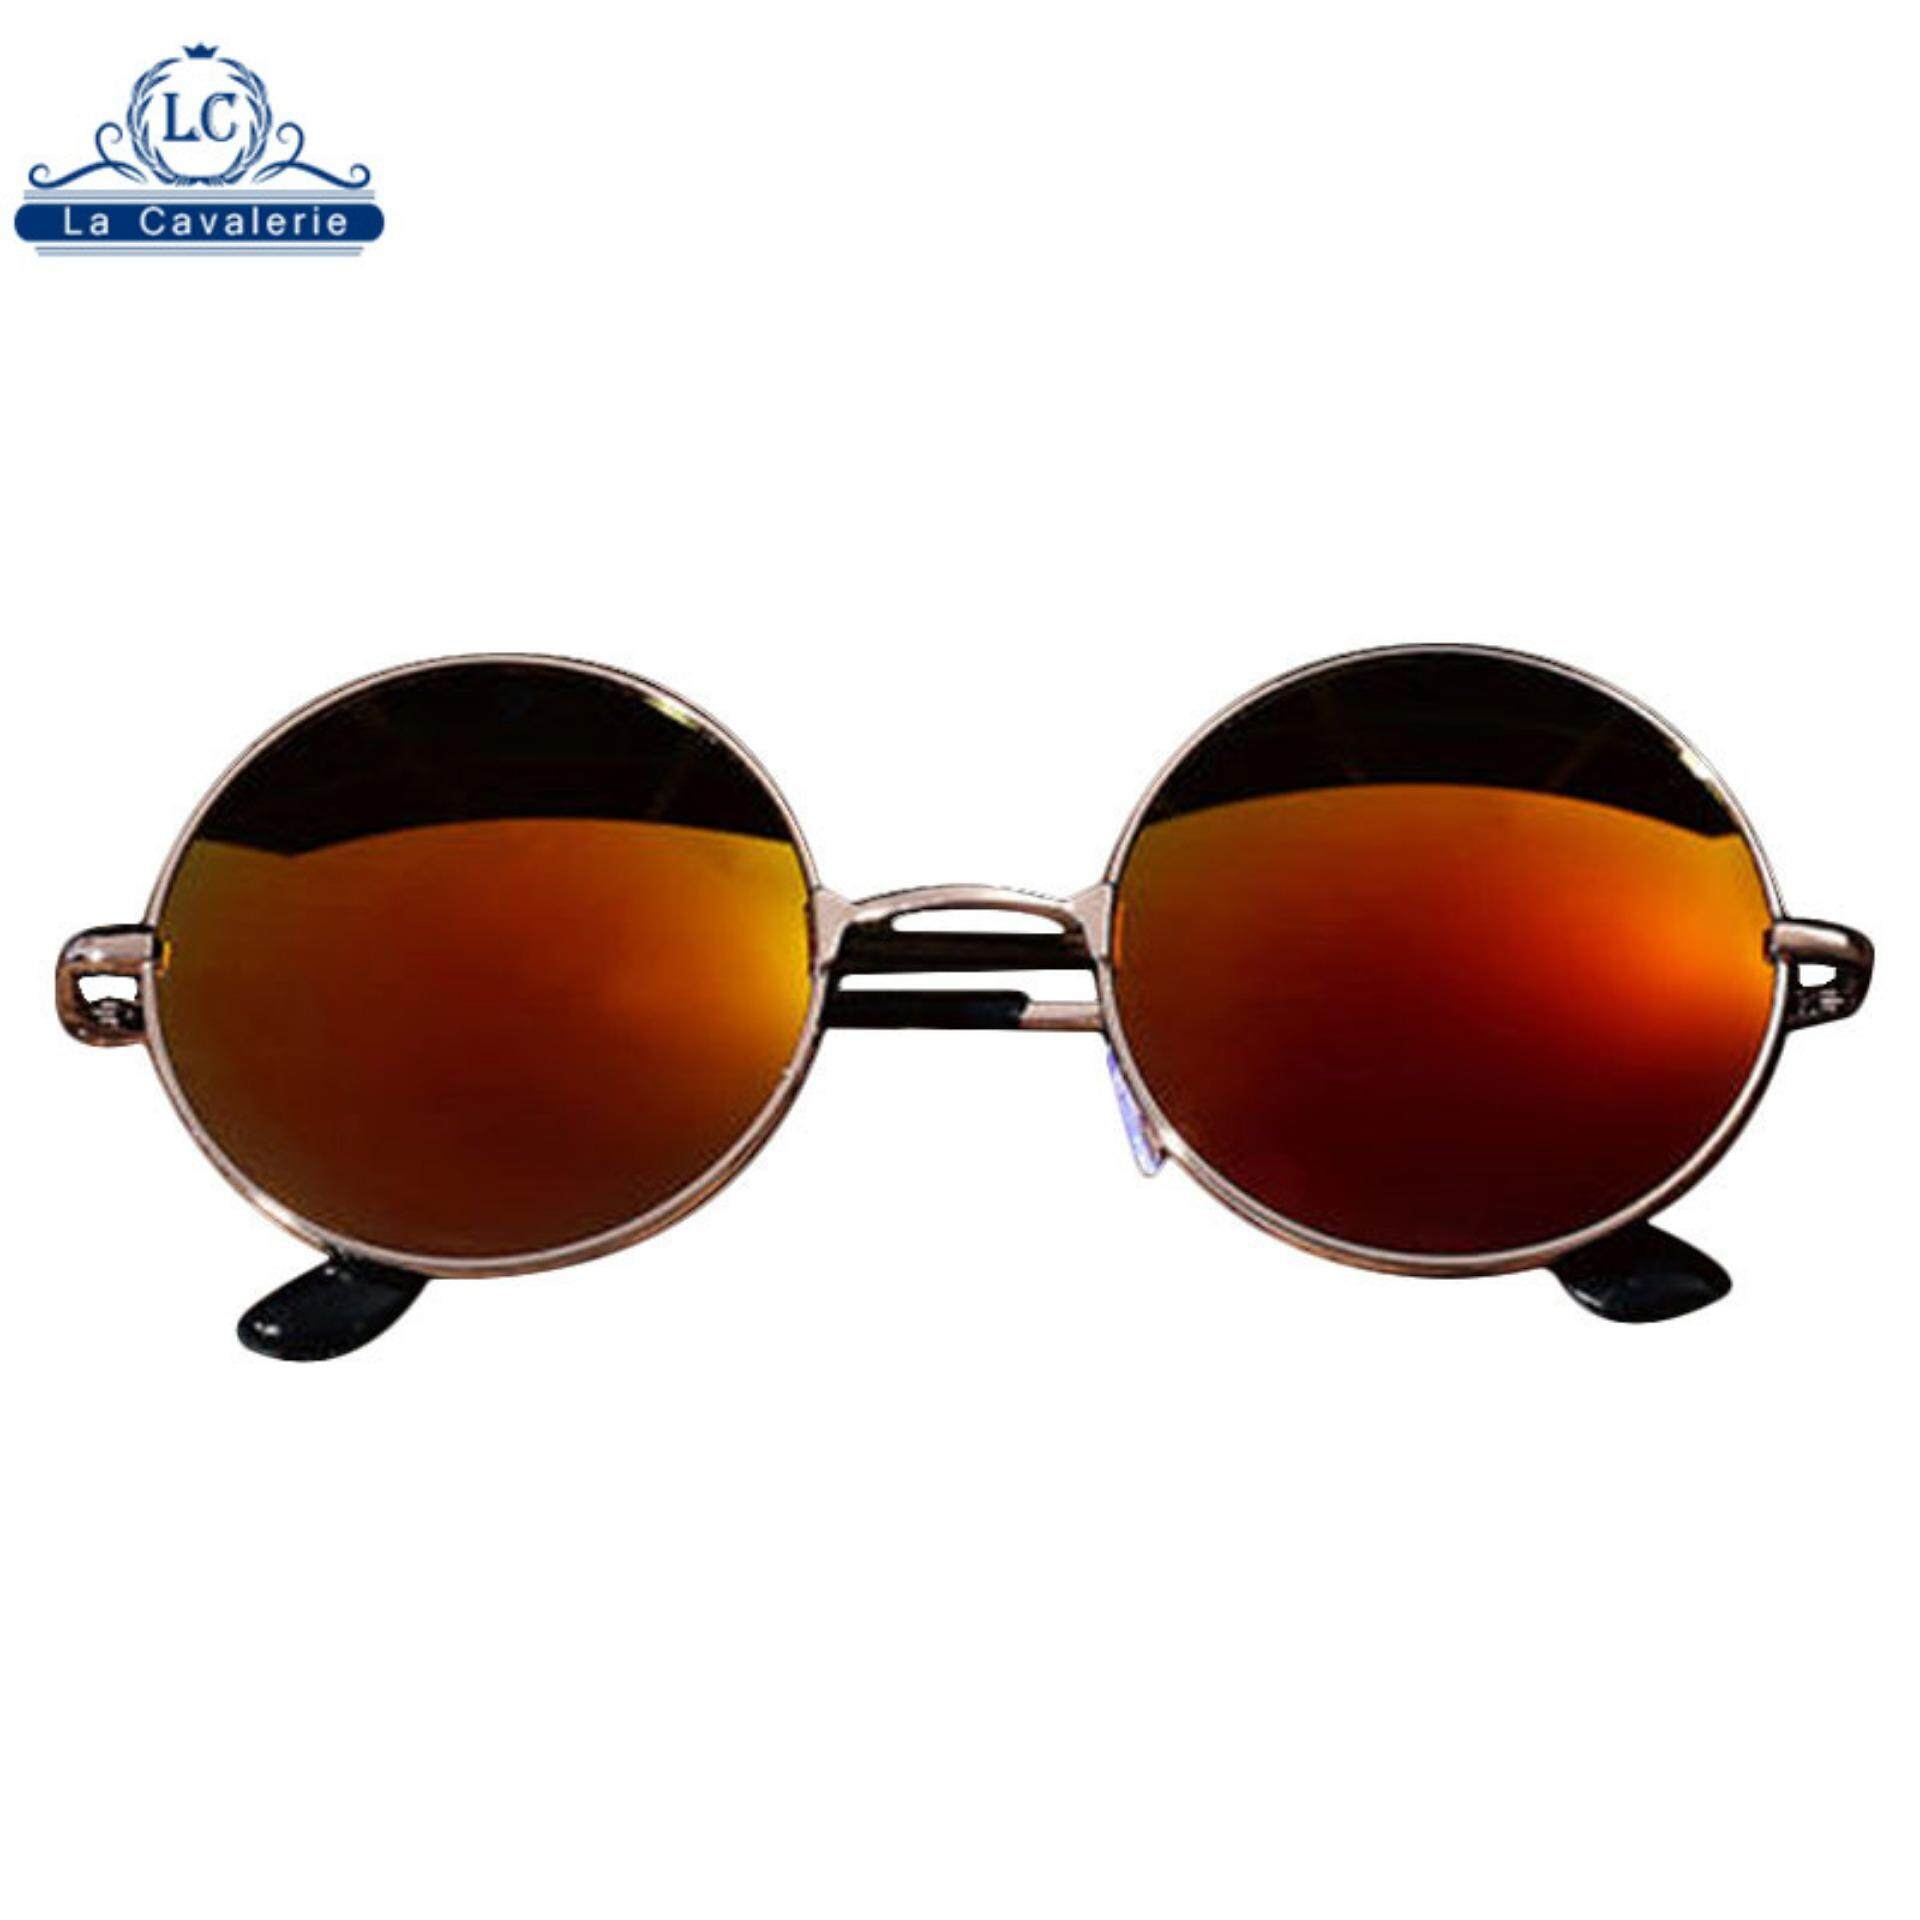 81578050a17d Cool and fashionable Men Women Retro Vintage Round Mirrored Sunglasses  Eyewear Outdoor Glasses